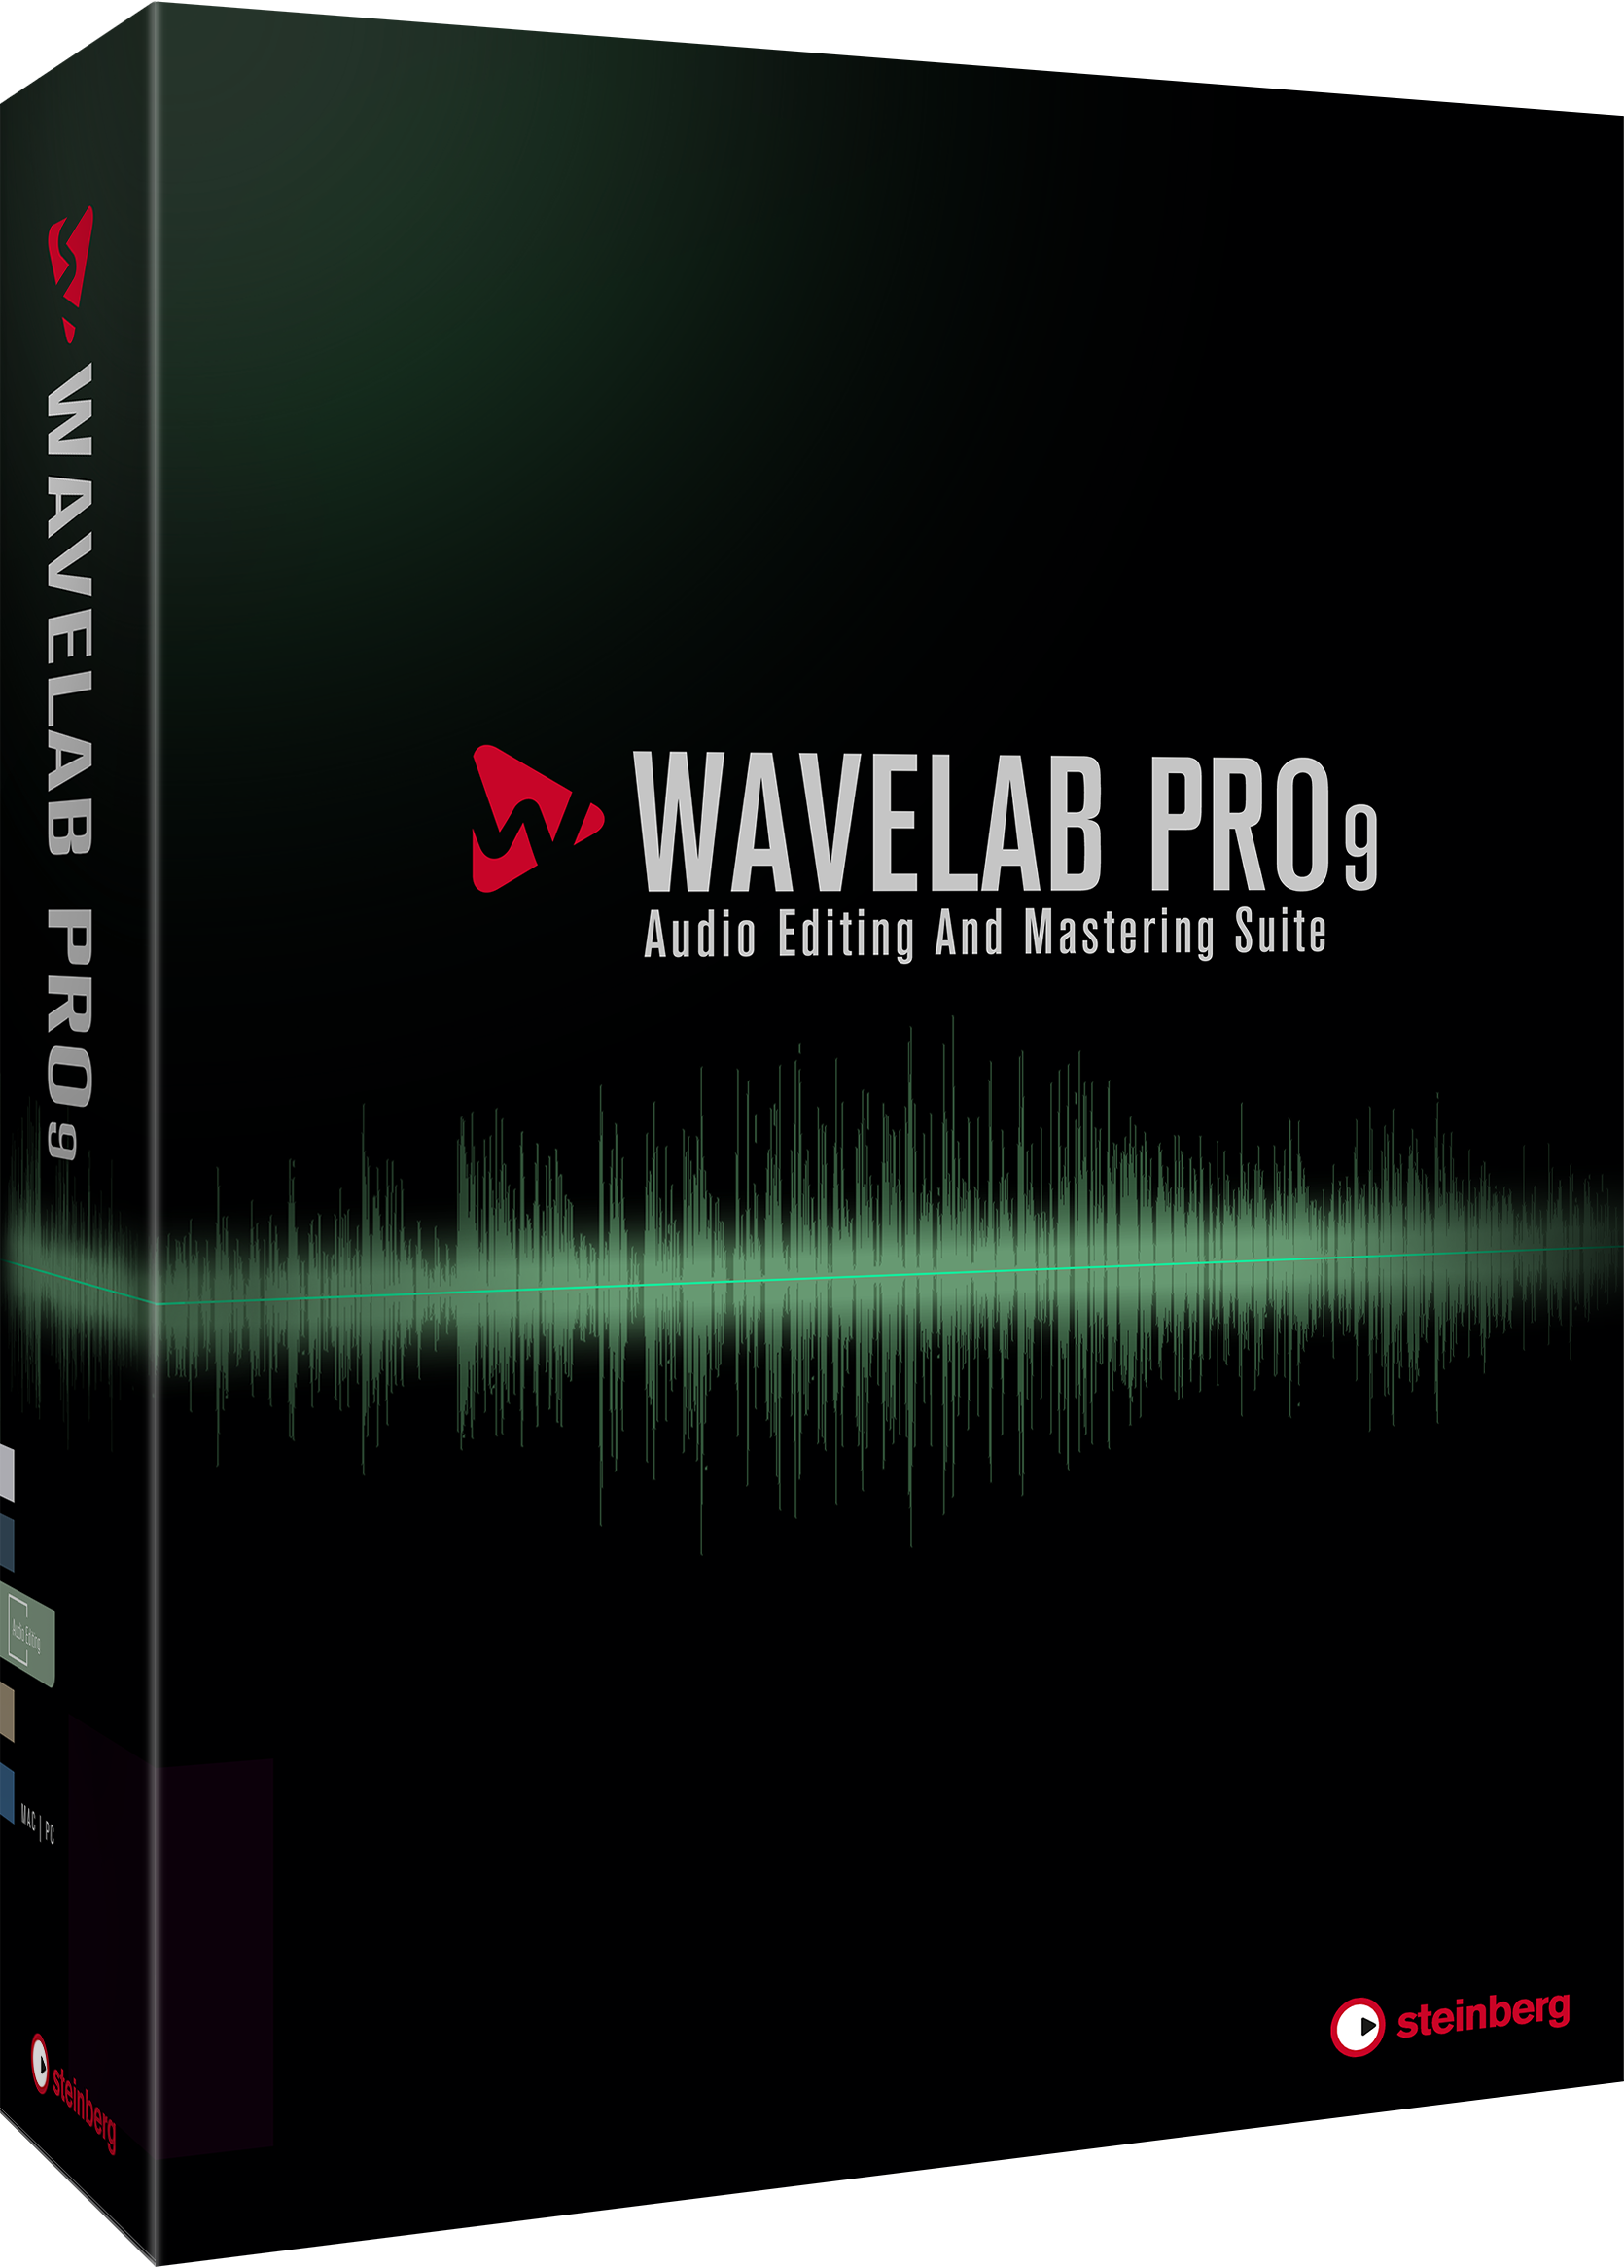 Steinberg Wavelab 9 EDU